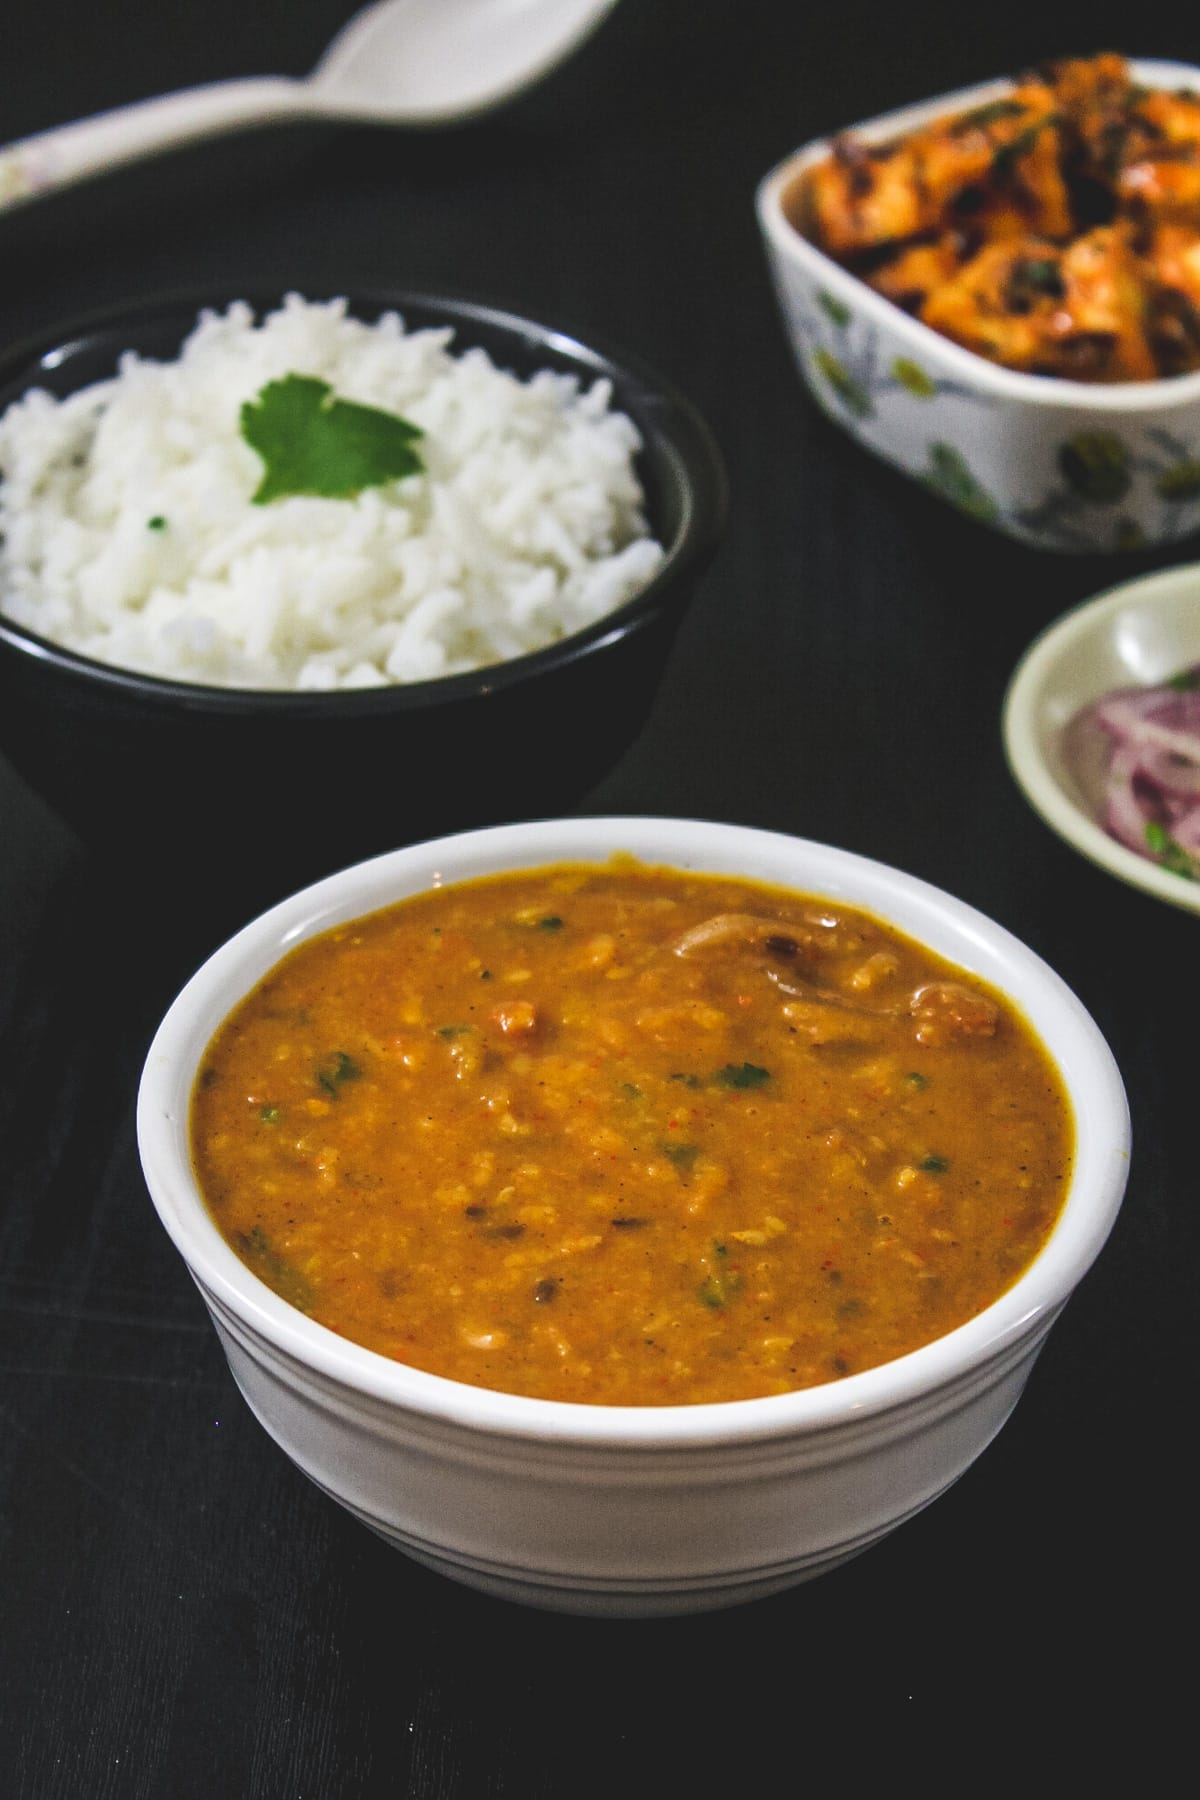 Toor dal in a bowl with side of rice and paneer sabzi.